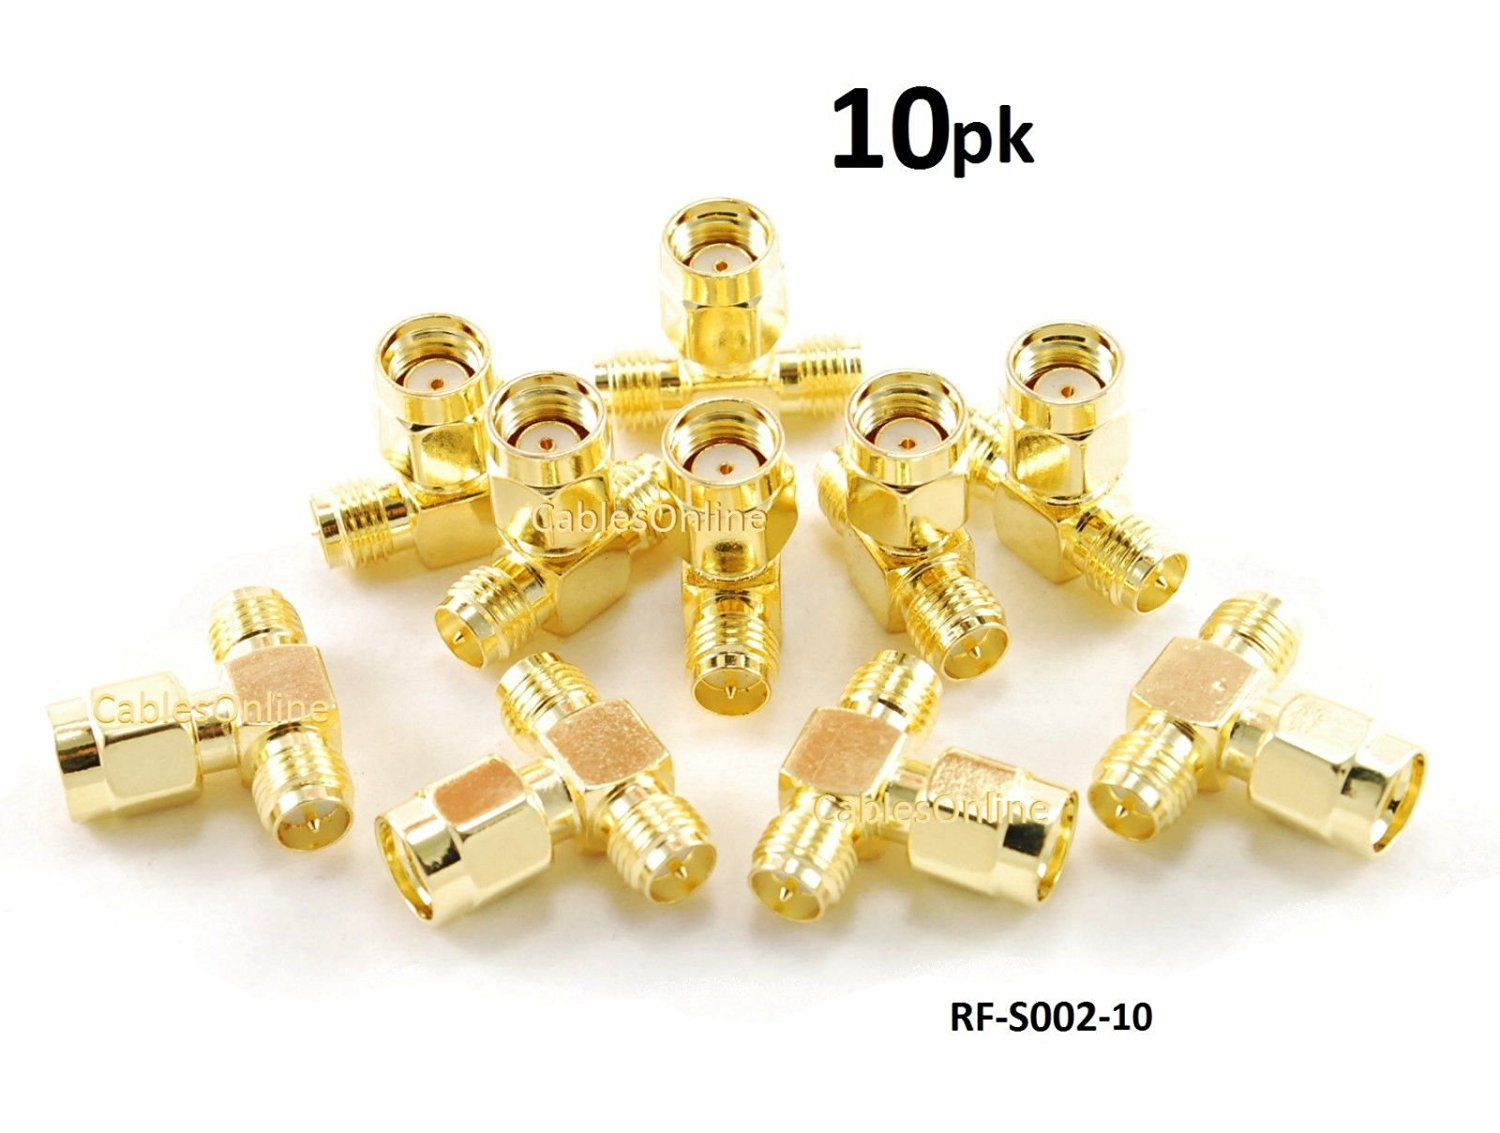 CablesOnline RP-SMA Jack-Plug-Jack 1 Male/2 Female RF Antenna T-Adapter (10 pack)(RF-S002-10)